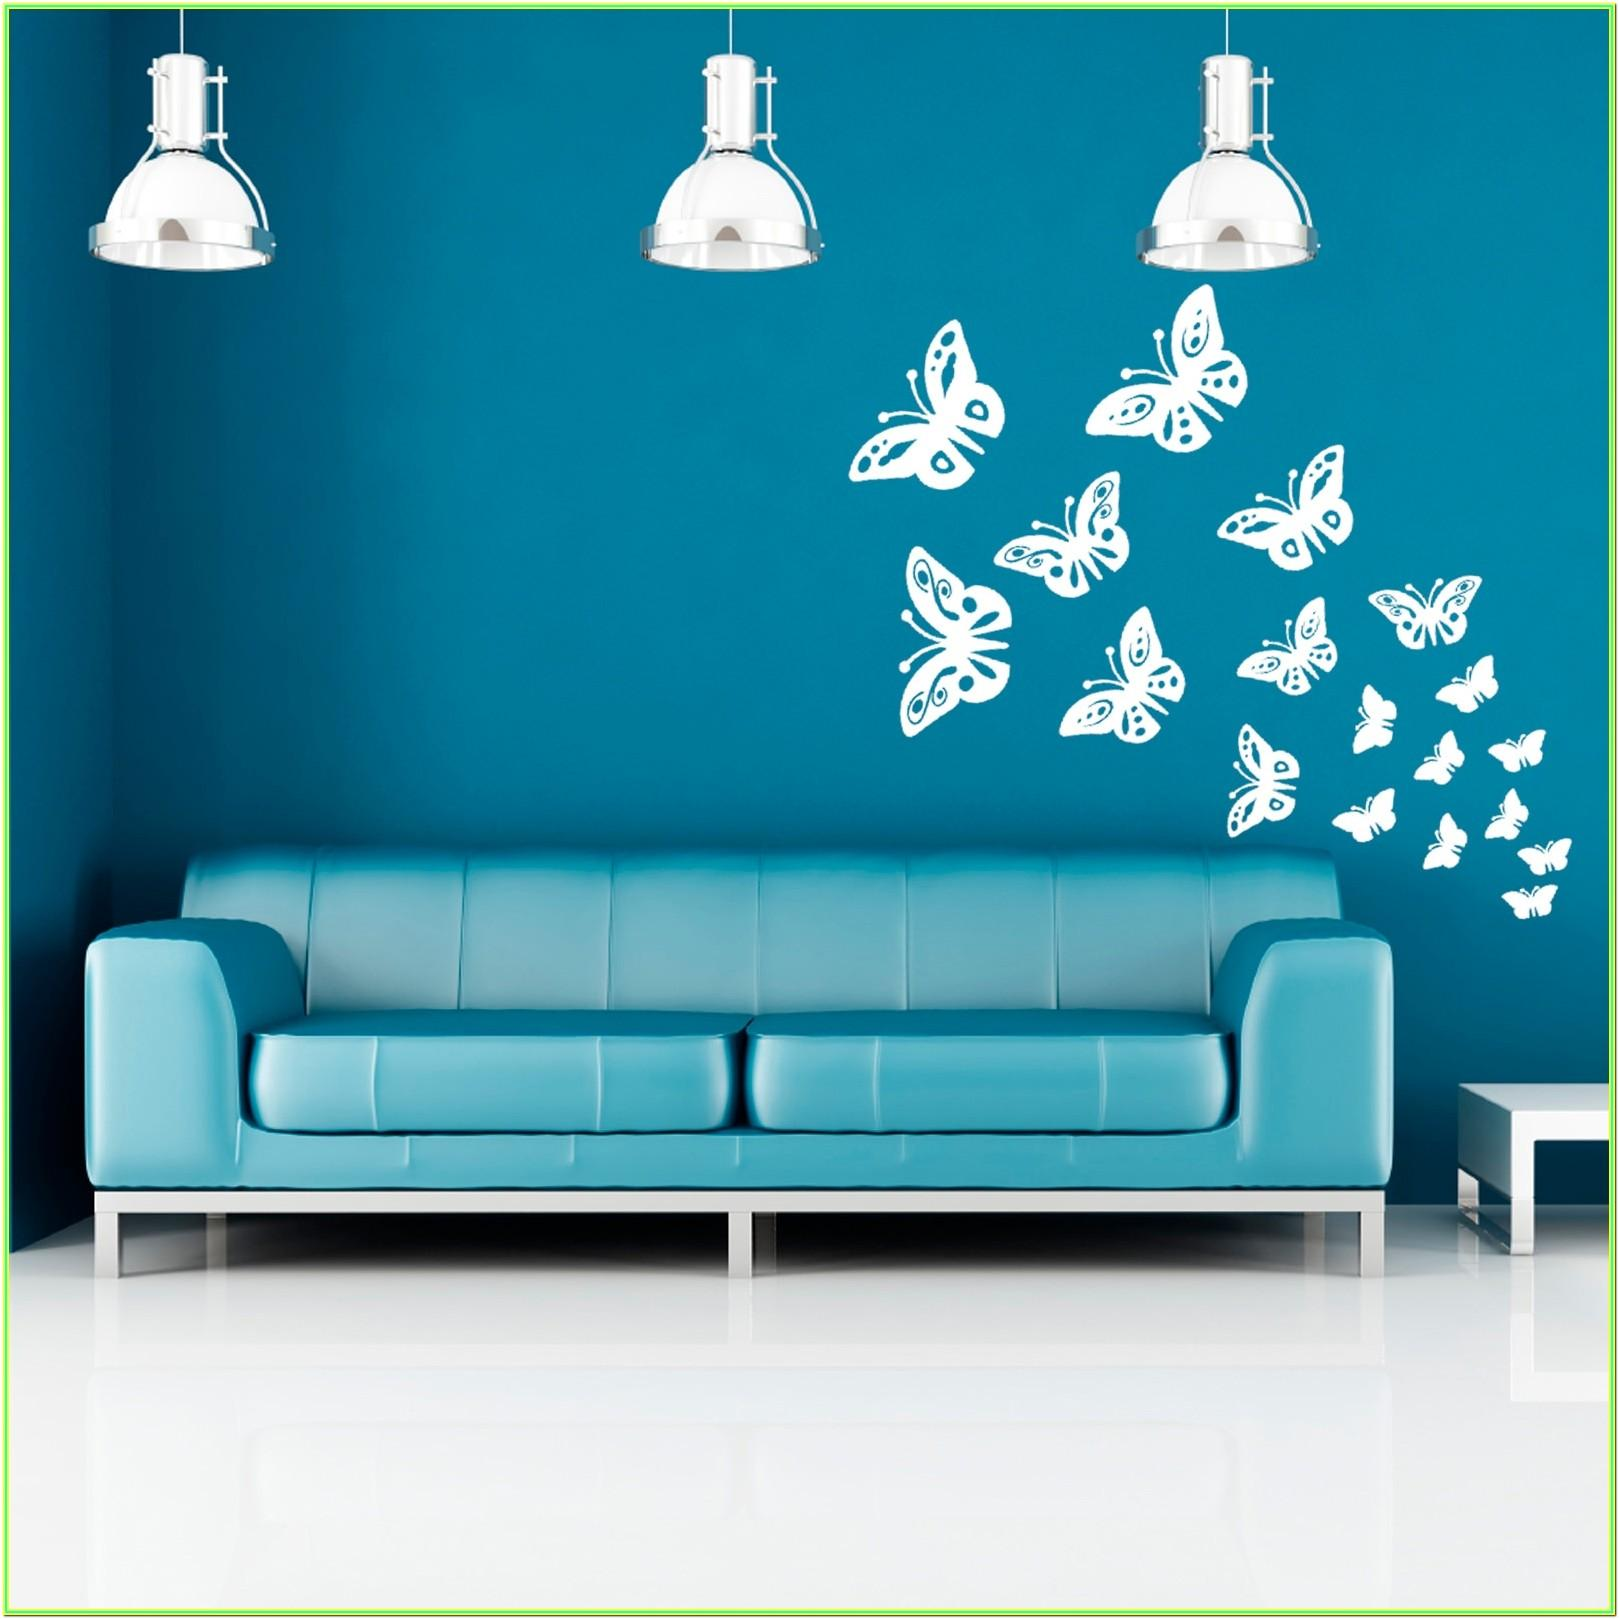 Living Room Wall Painting Design Images